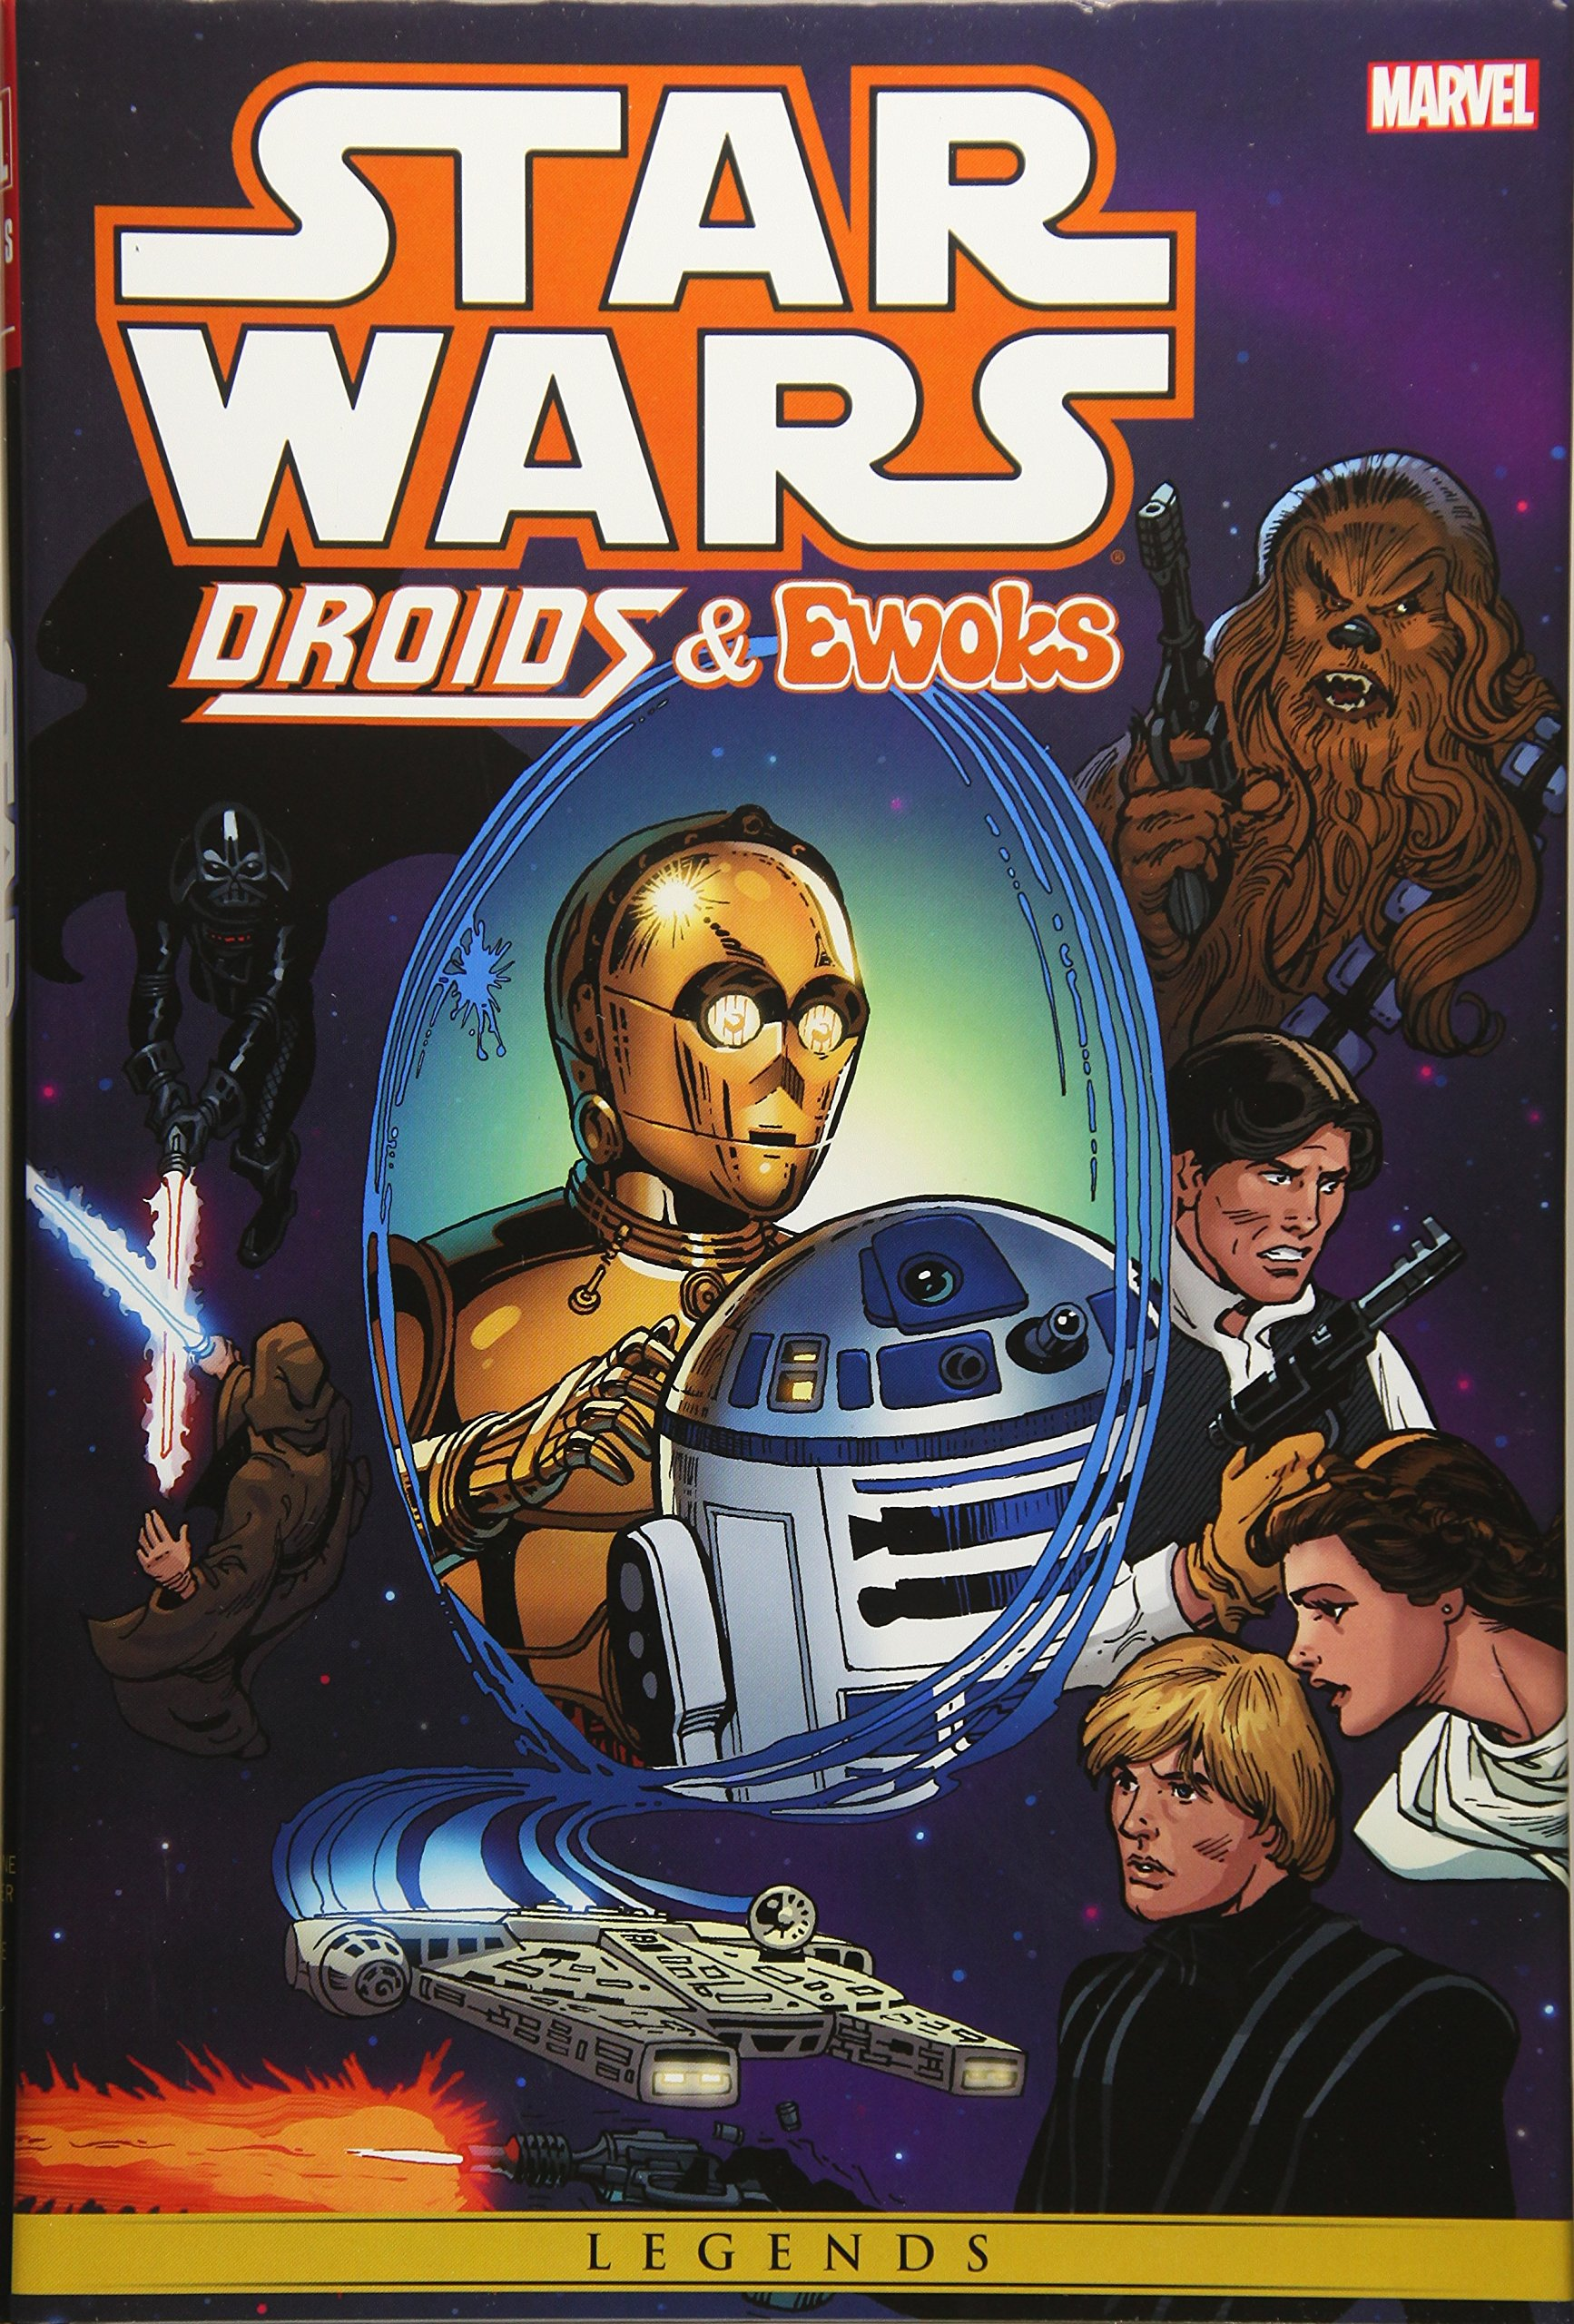 Star Wars Droids: Star Wars According to the Droids